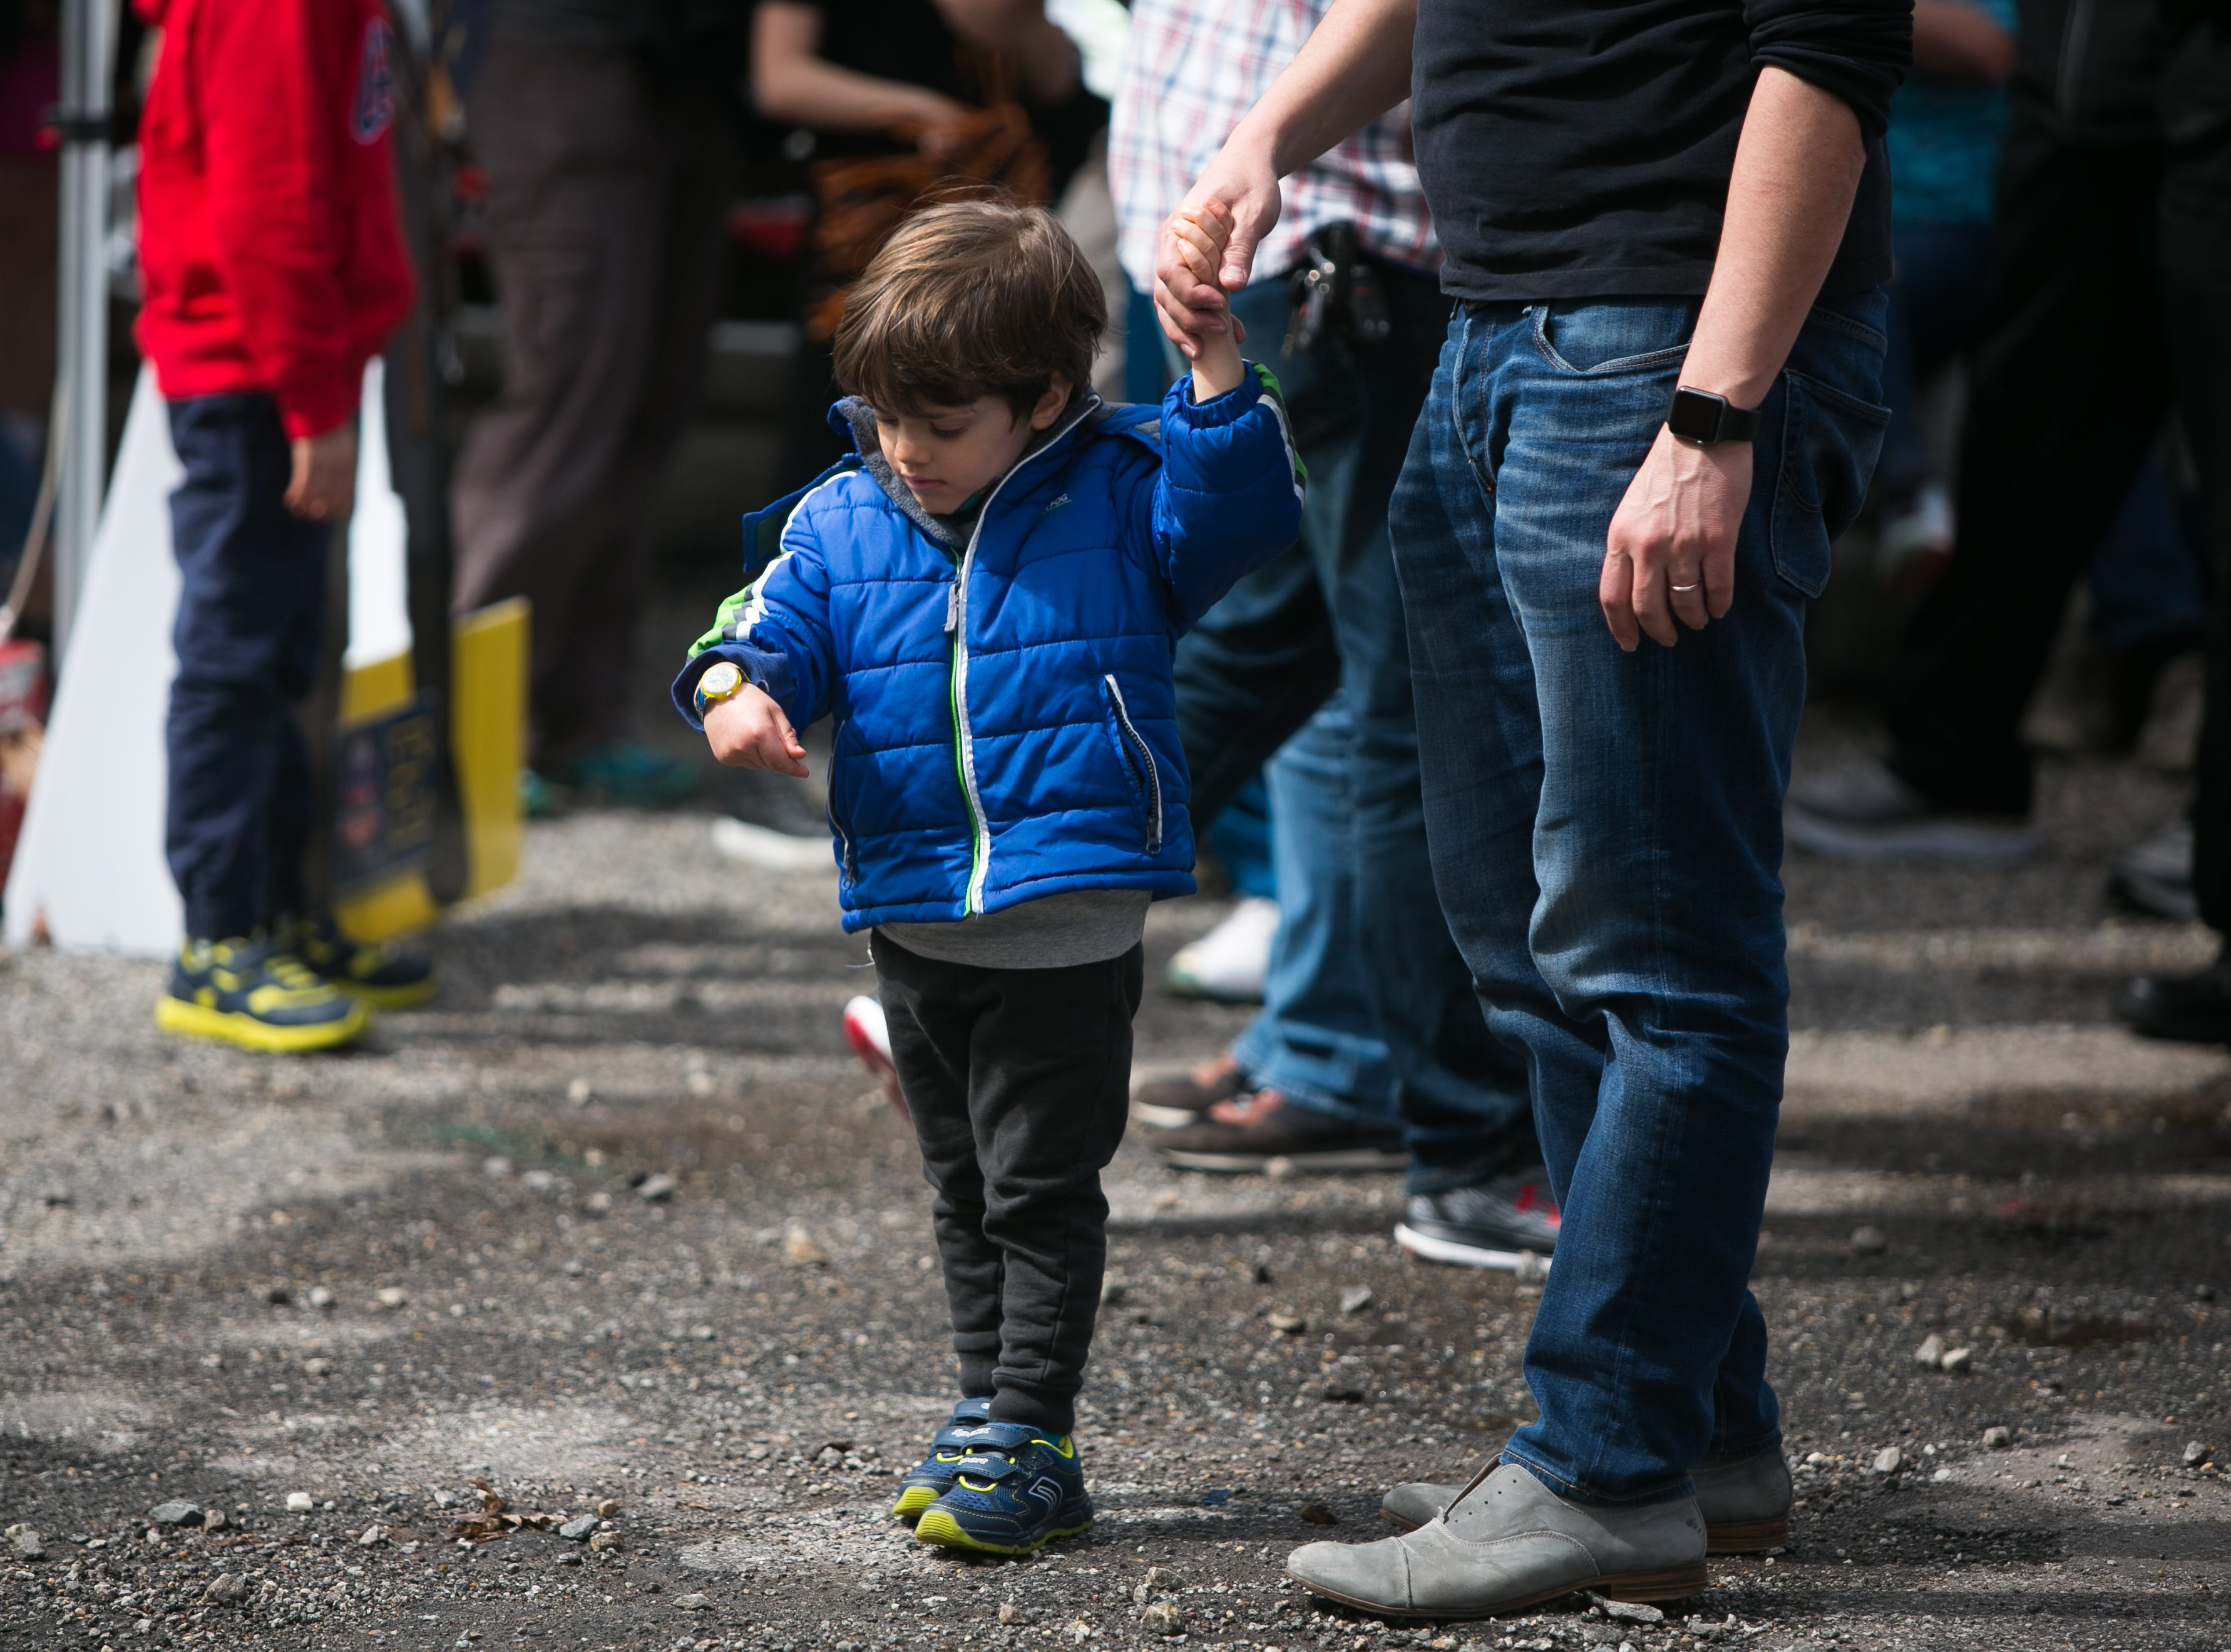 Fans dance and kids play as Lyric performs at the Ingles SoCon Fan Experience  across the street from the U.S. Cellular Center, at 68 Haywood St. in downtown Asheville, on March 10, 2019.